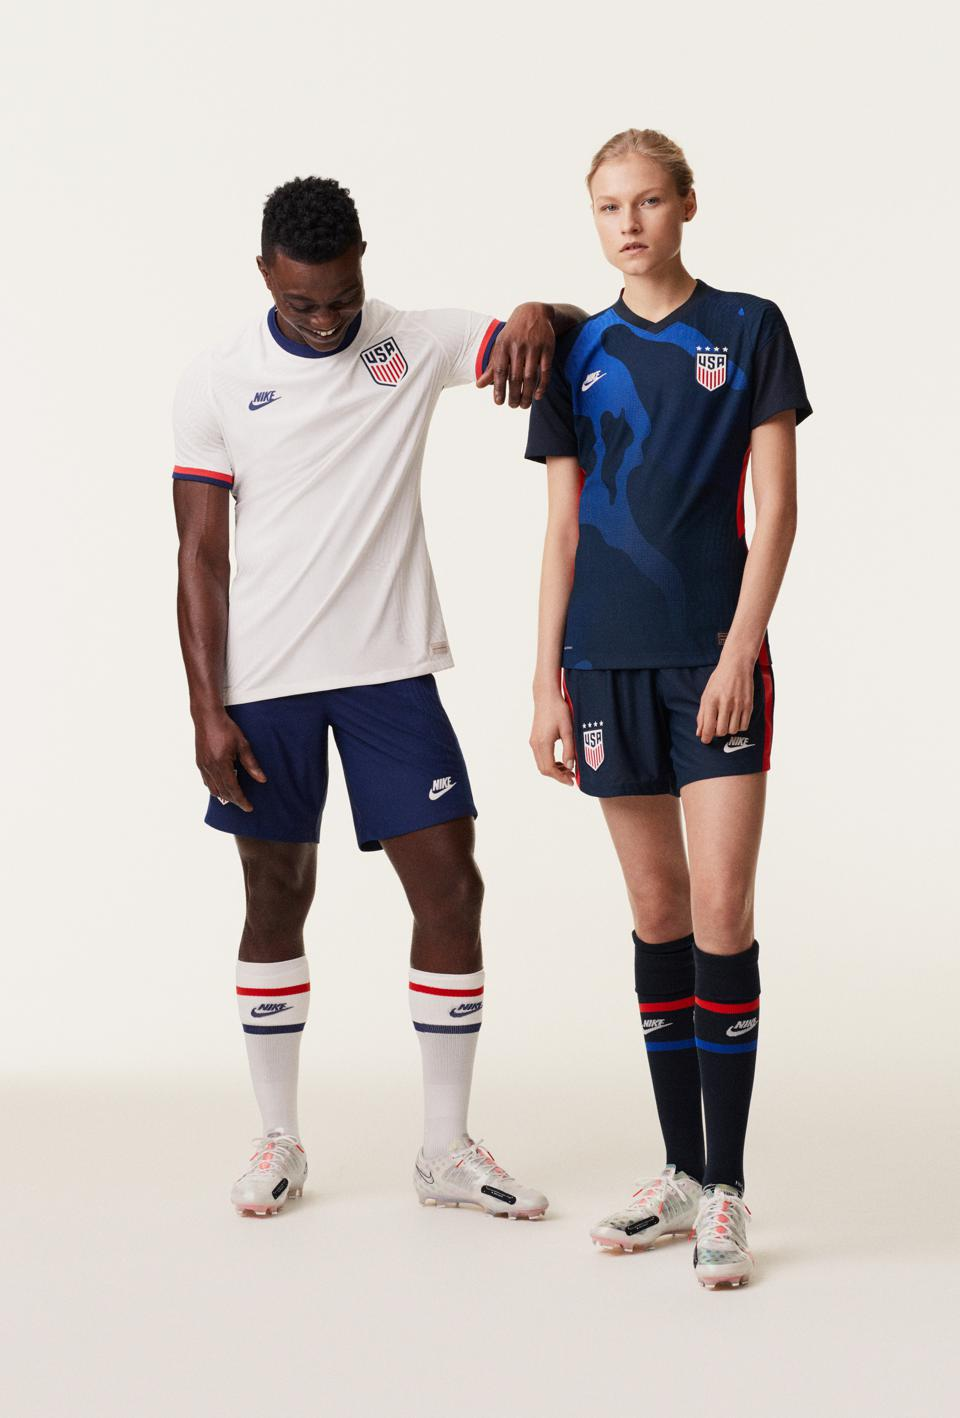 The Nike USA soccer uniforms for the 2020 Olympics